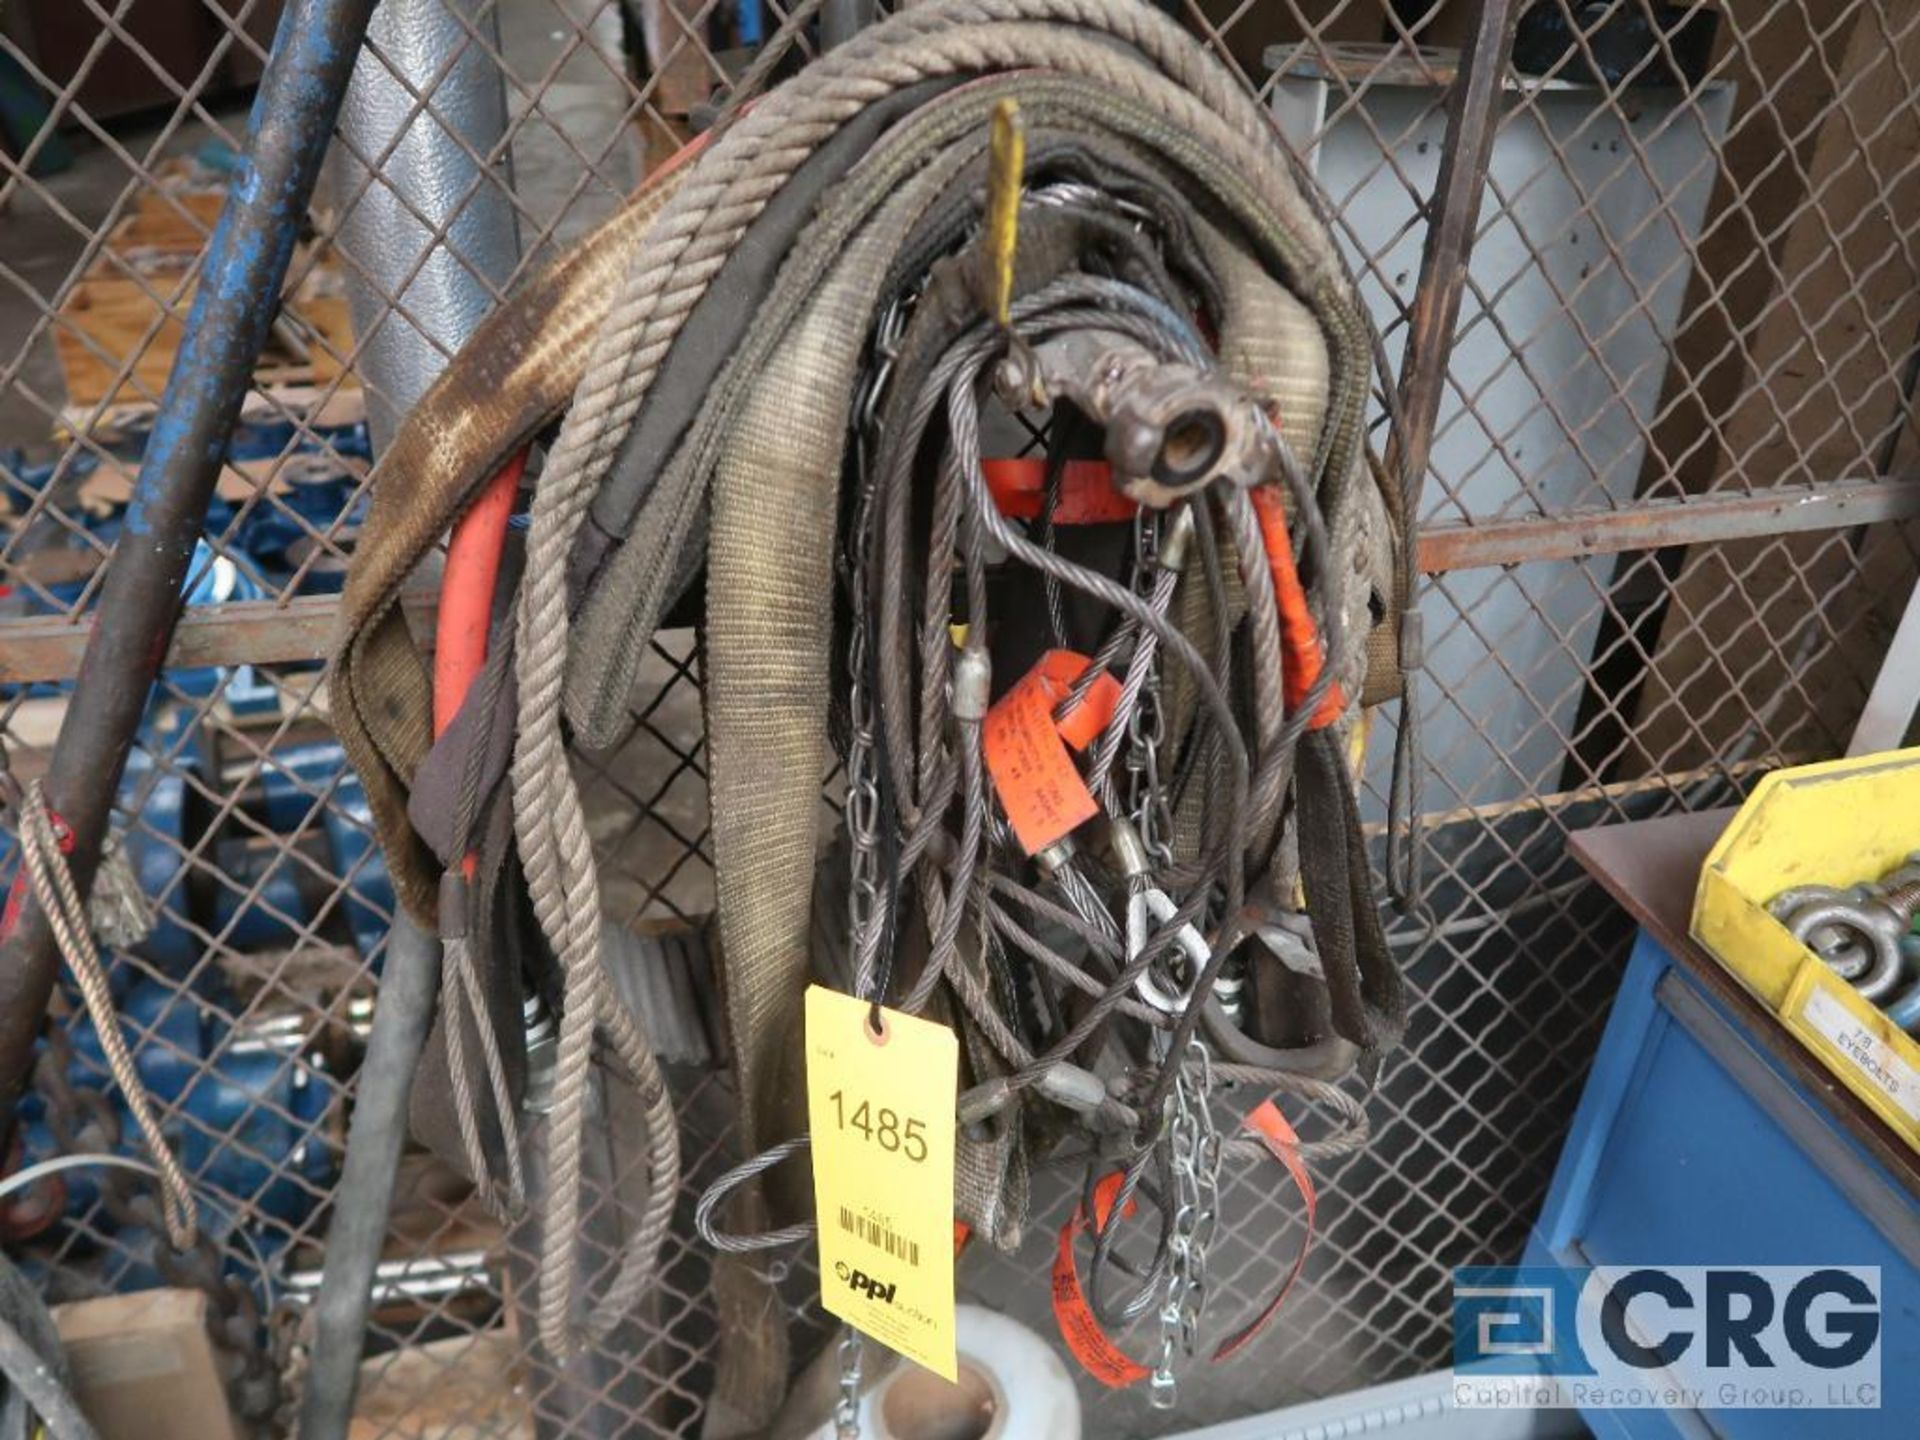 Lot of cable and nylon slings (Basement Stores)